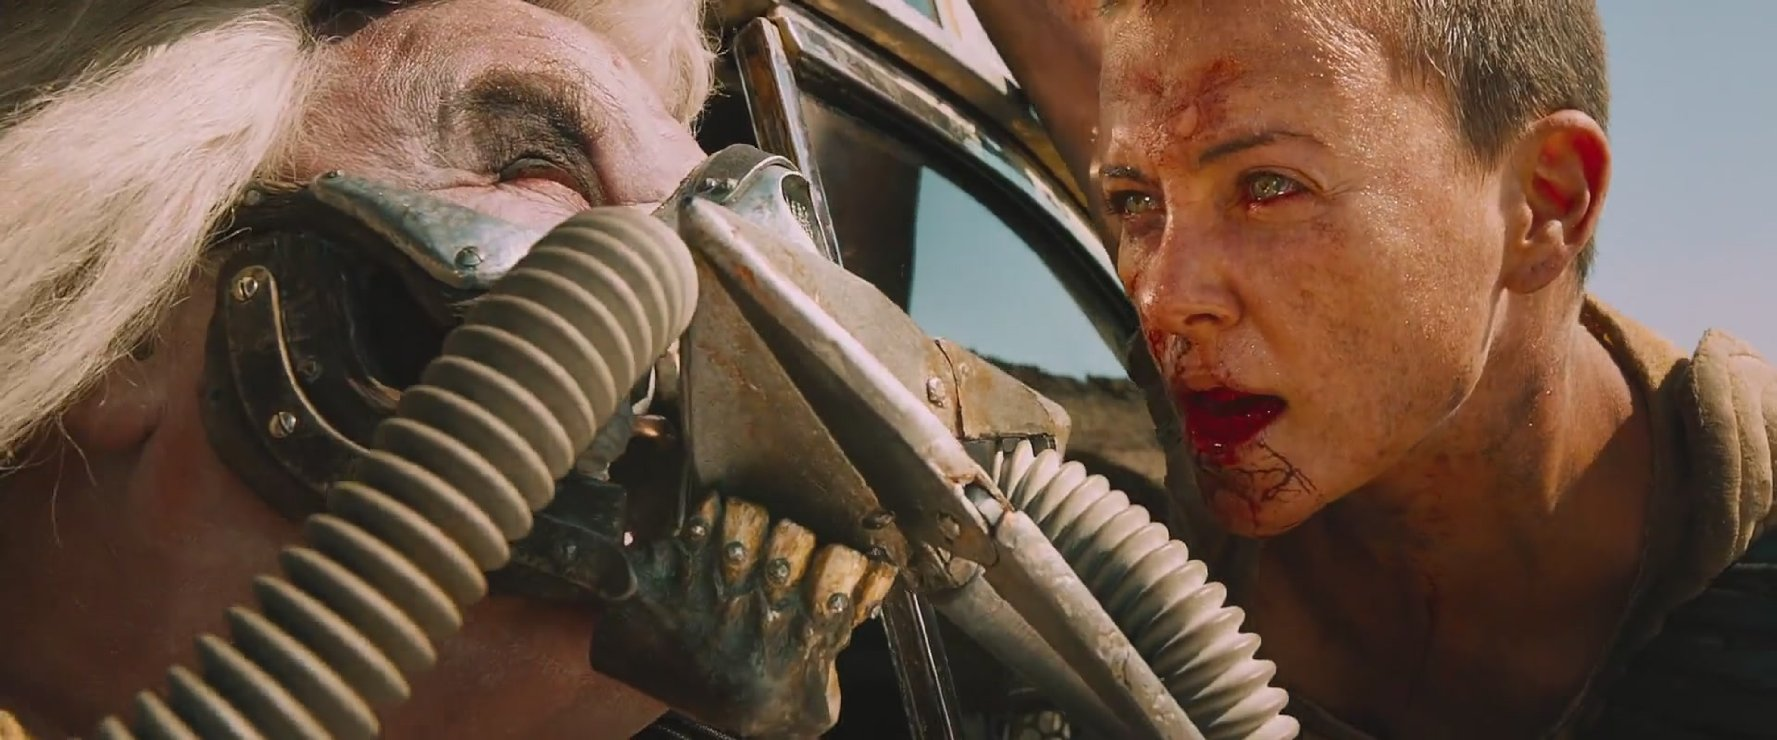 a feminist analysis of the movie mad max fury road